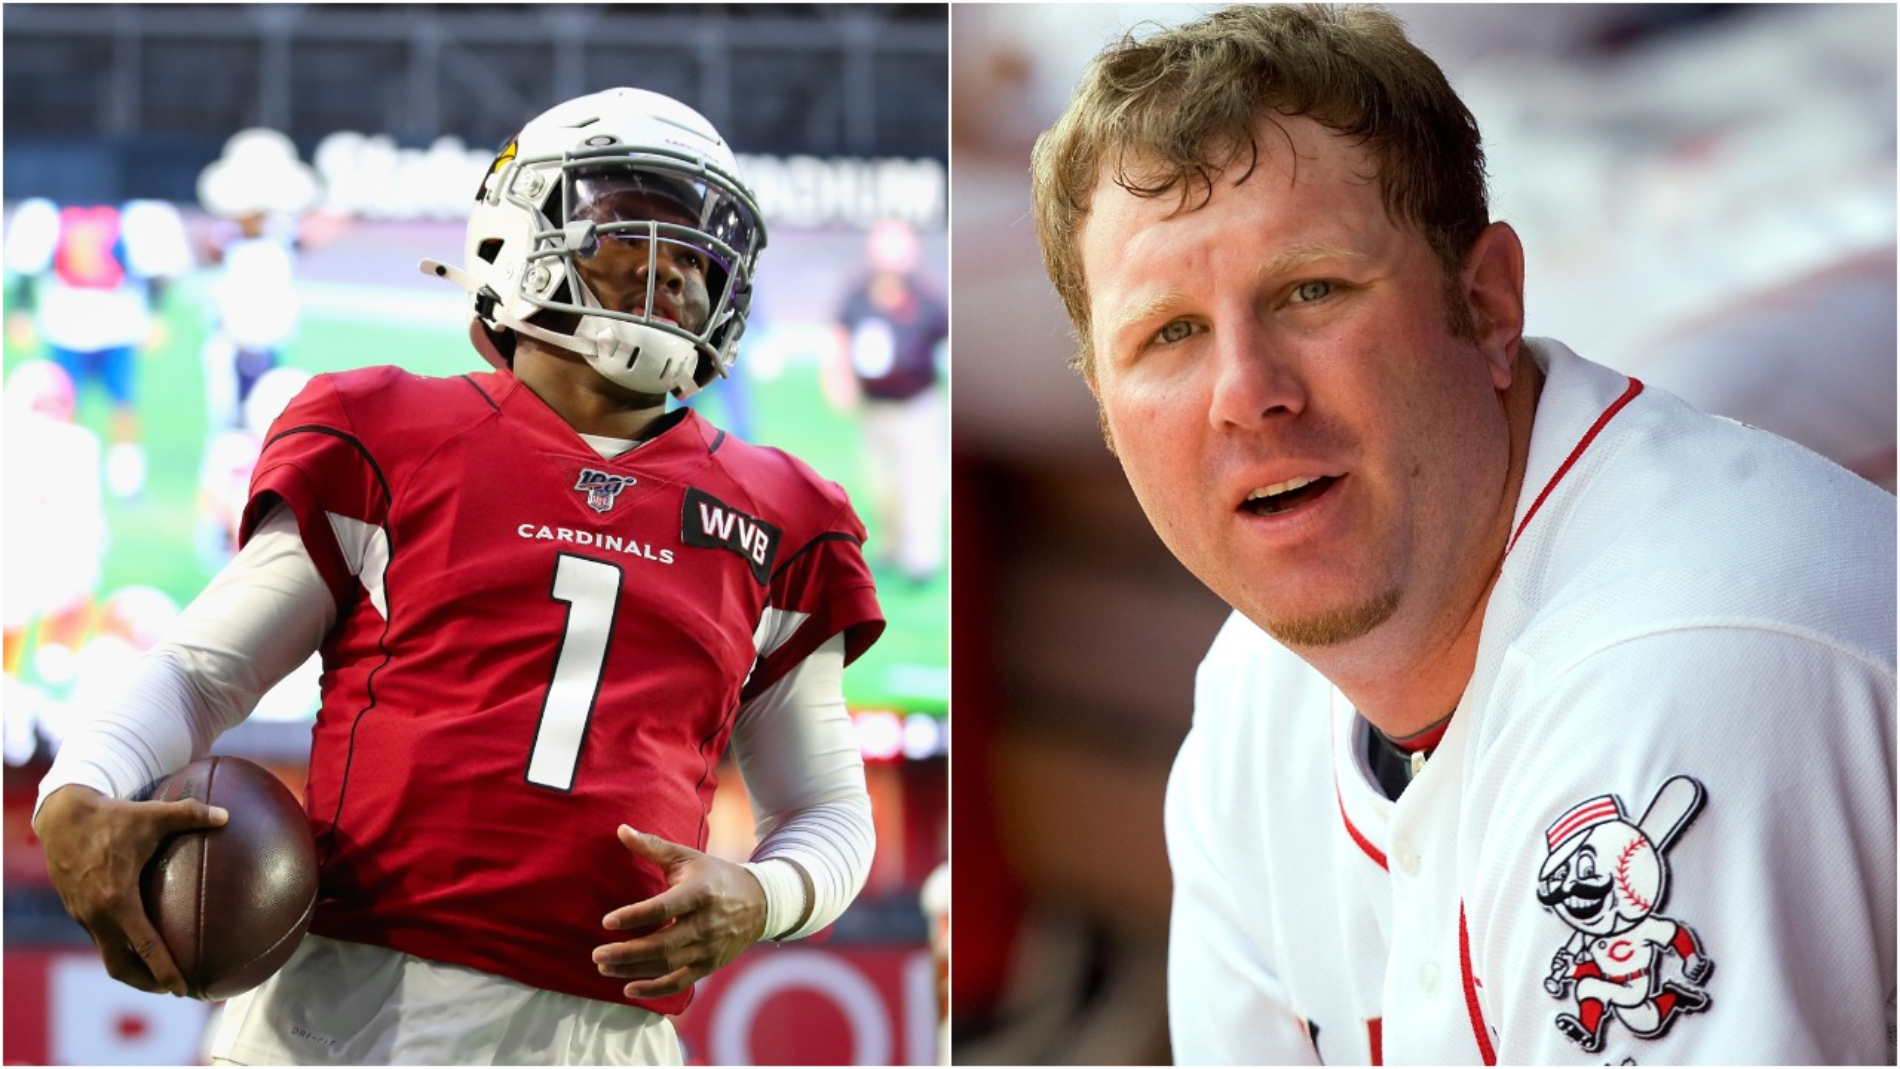 Kyler Murray had an electric rookie season for the Arizona Cardinals. However, he made a life-changing decision similar to Adam Dunn's.